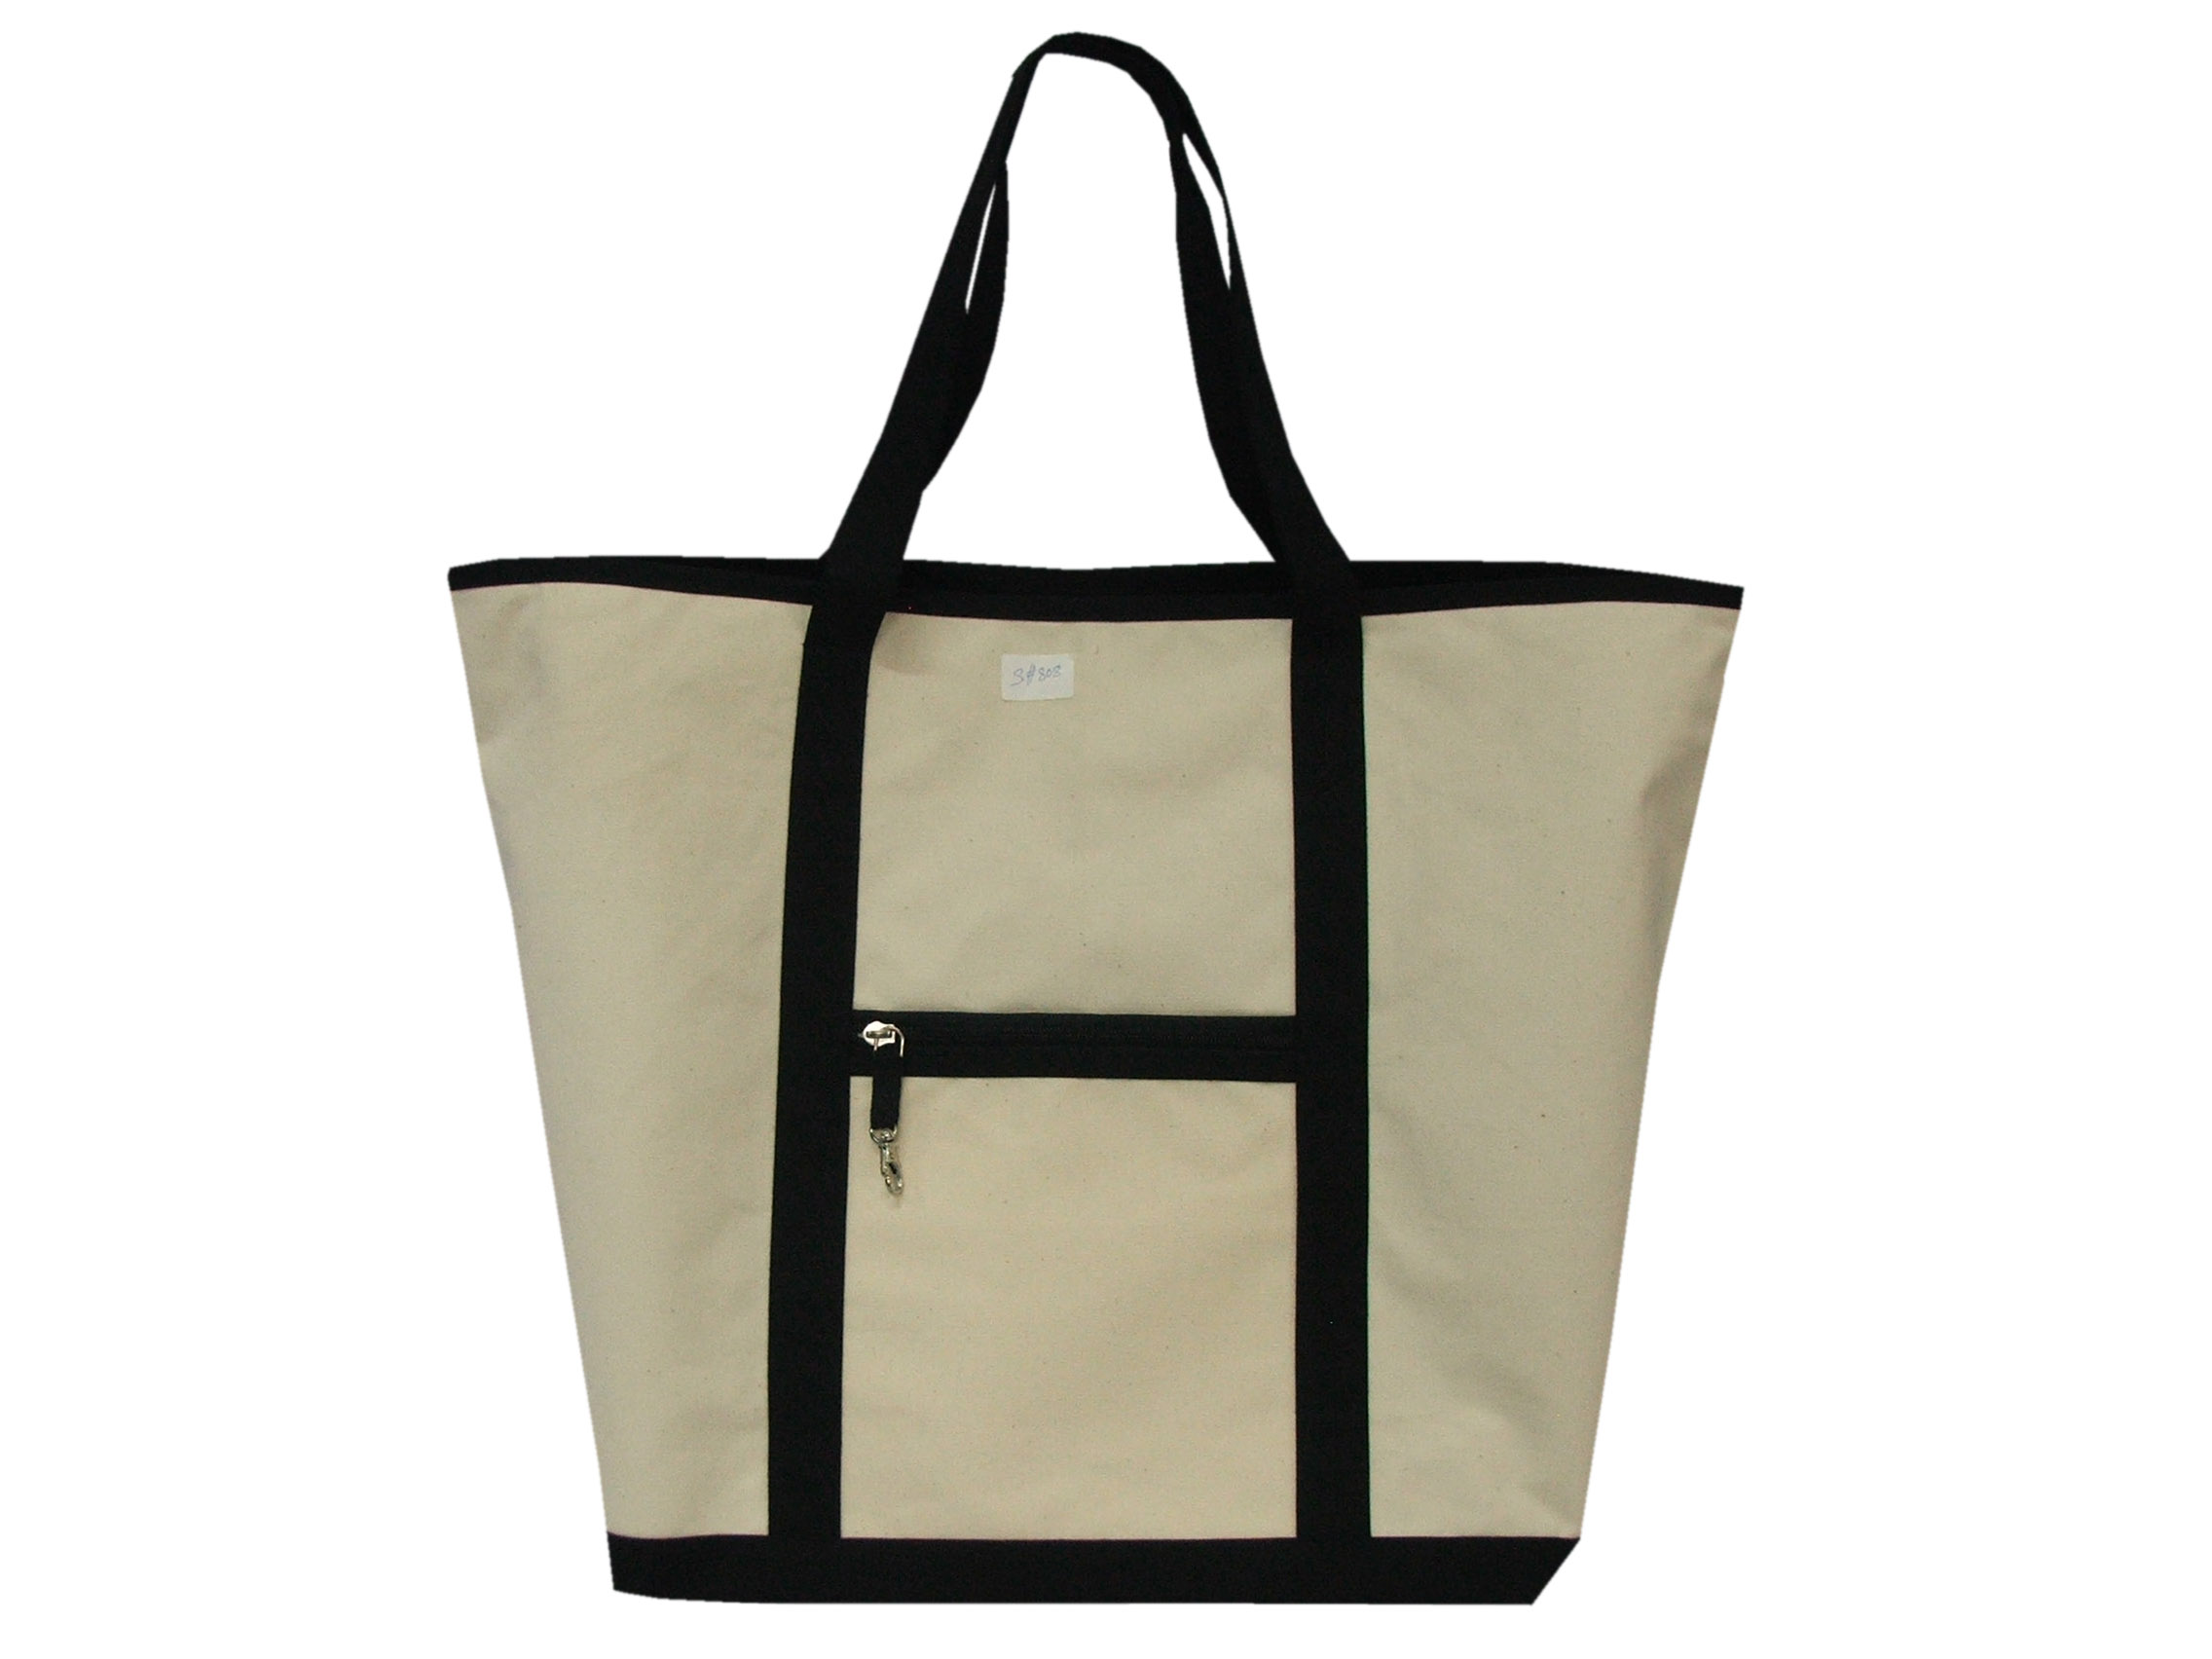 Deluxe Recycled Cotton Tote Bag